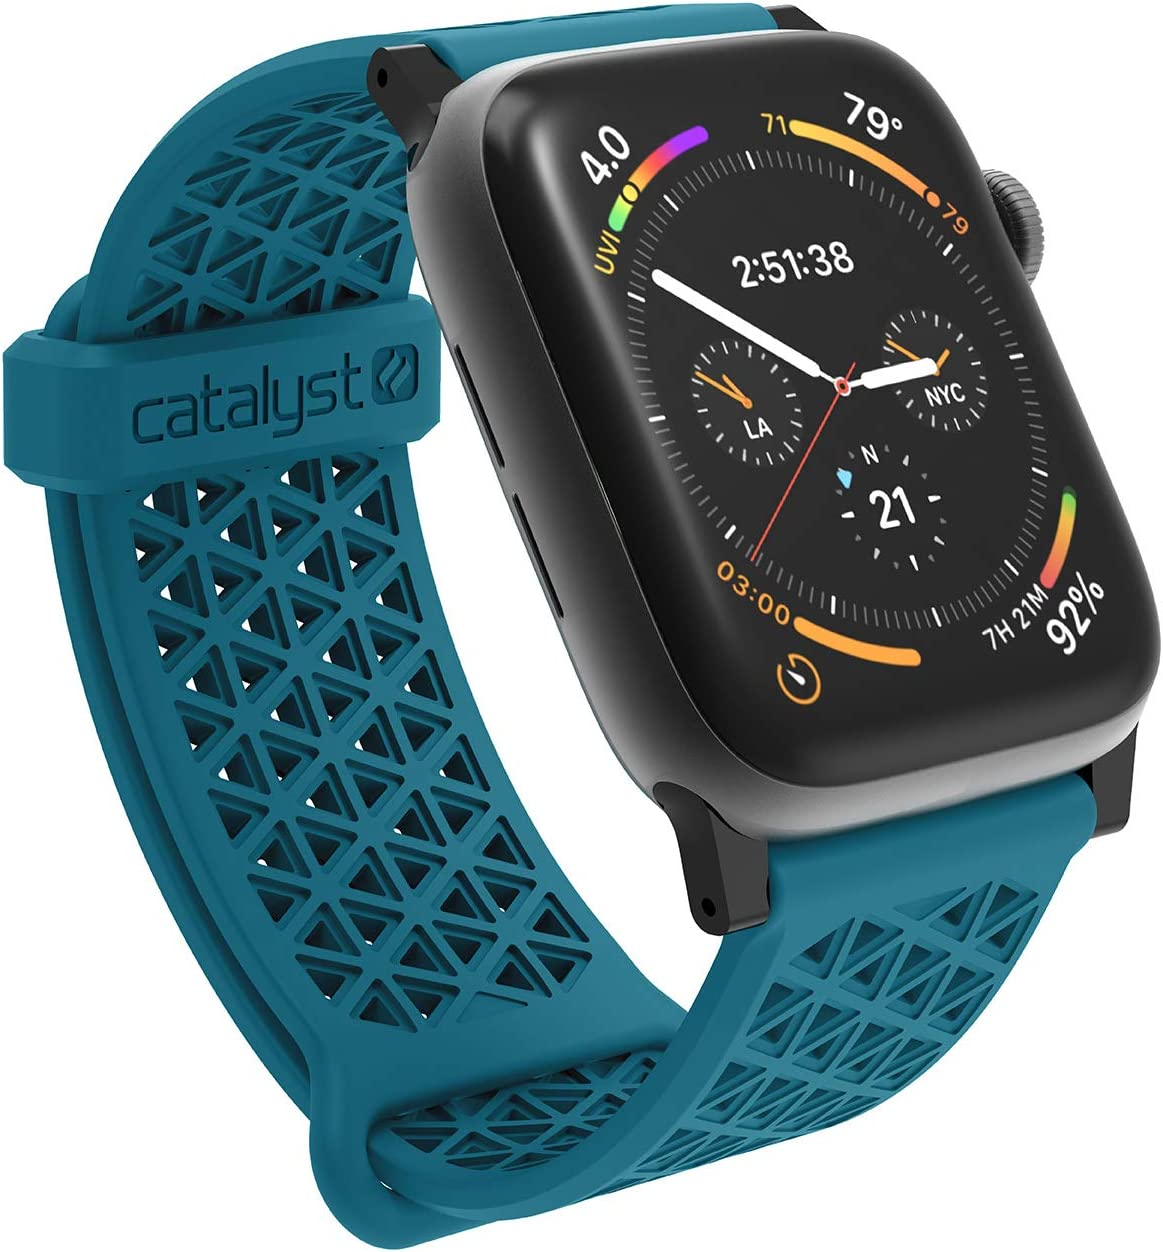 Compatible with Apple Watch Band 42mm 44mm, Hypoallergenic, Breathable Wristband, Soft Silicone Replacement Bands, Sport Band for iWatch Series 1,2,3,4,5 by Catalyst - Teal